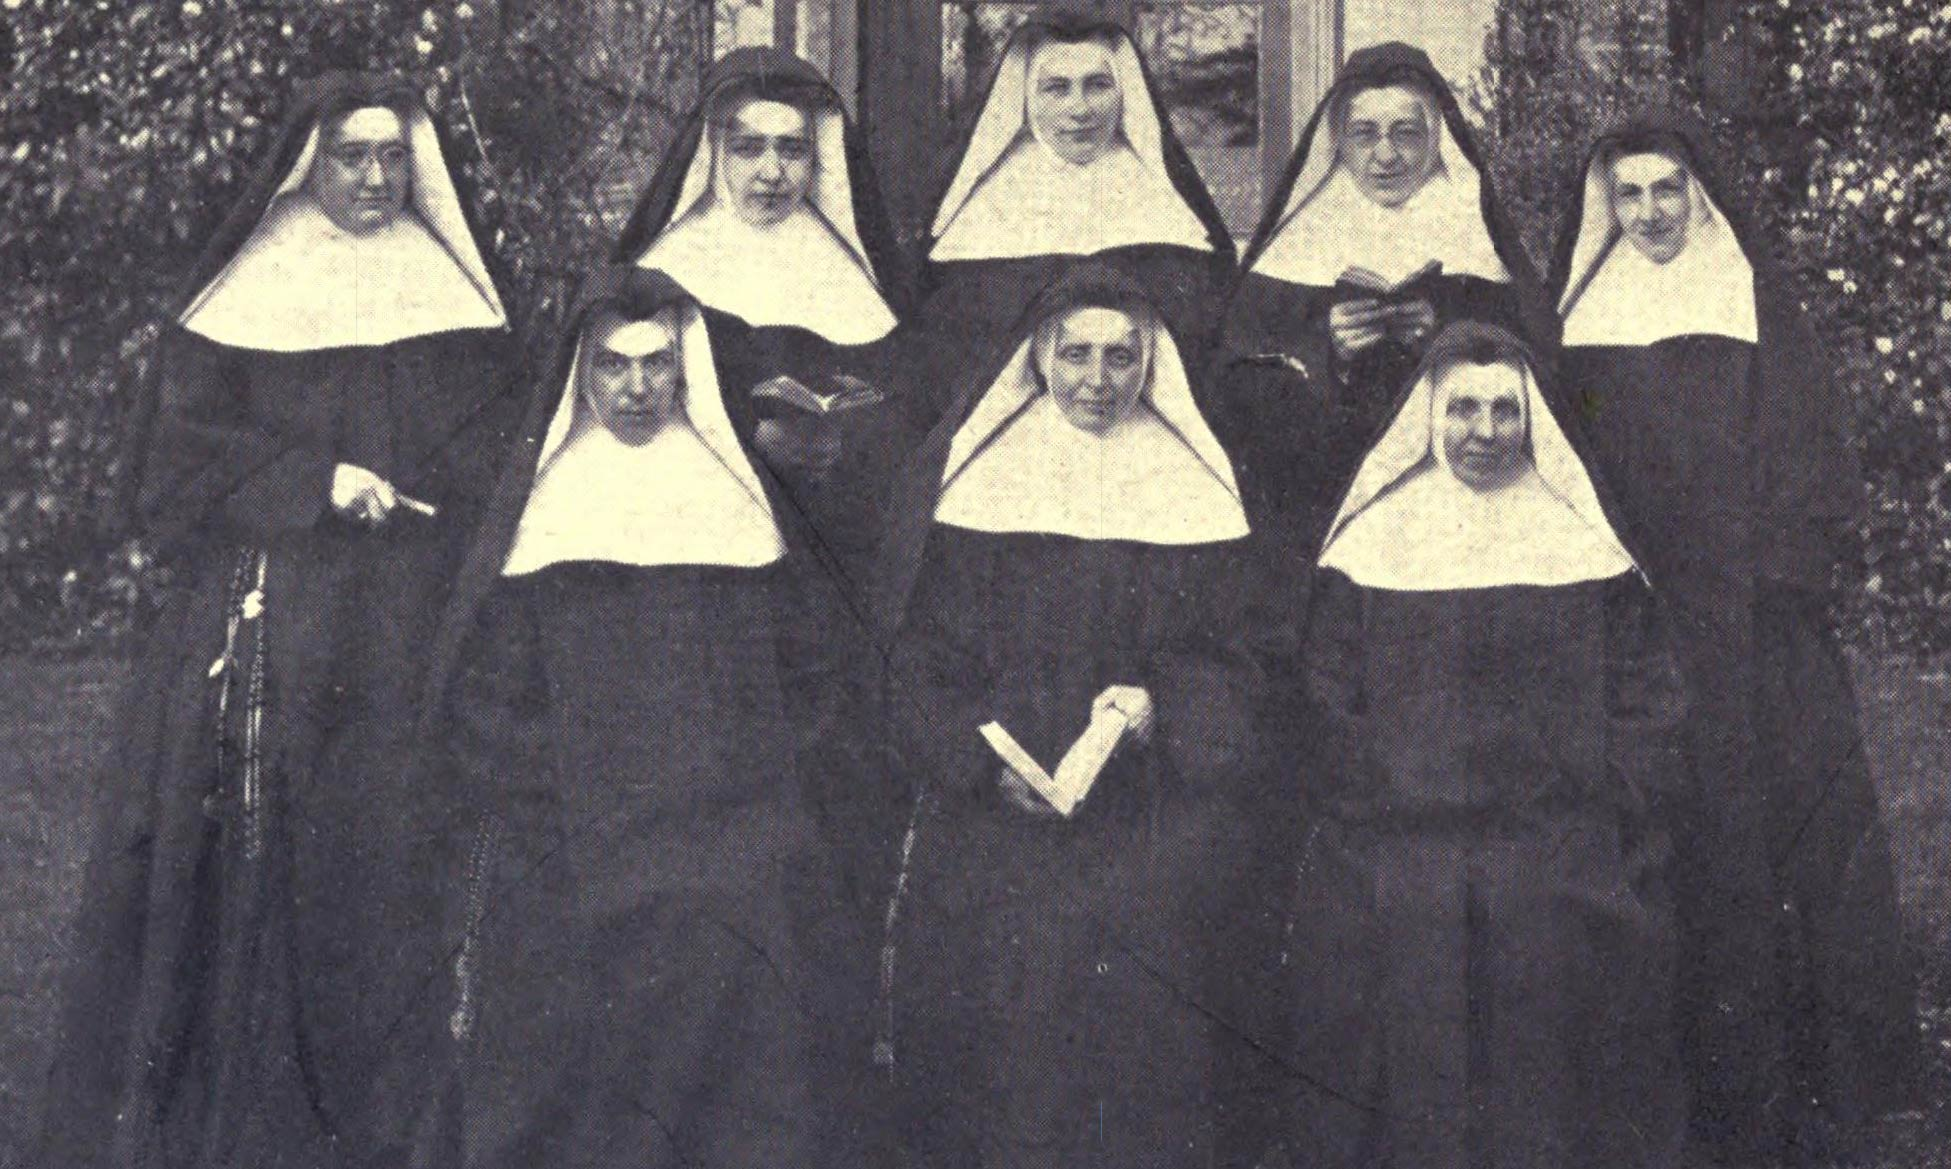 Photograph of How Irish nuns fled from Ypres